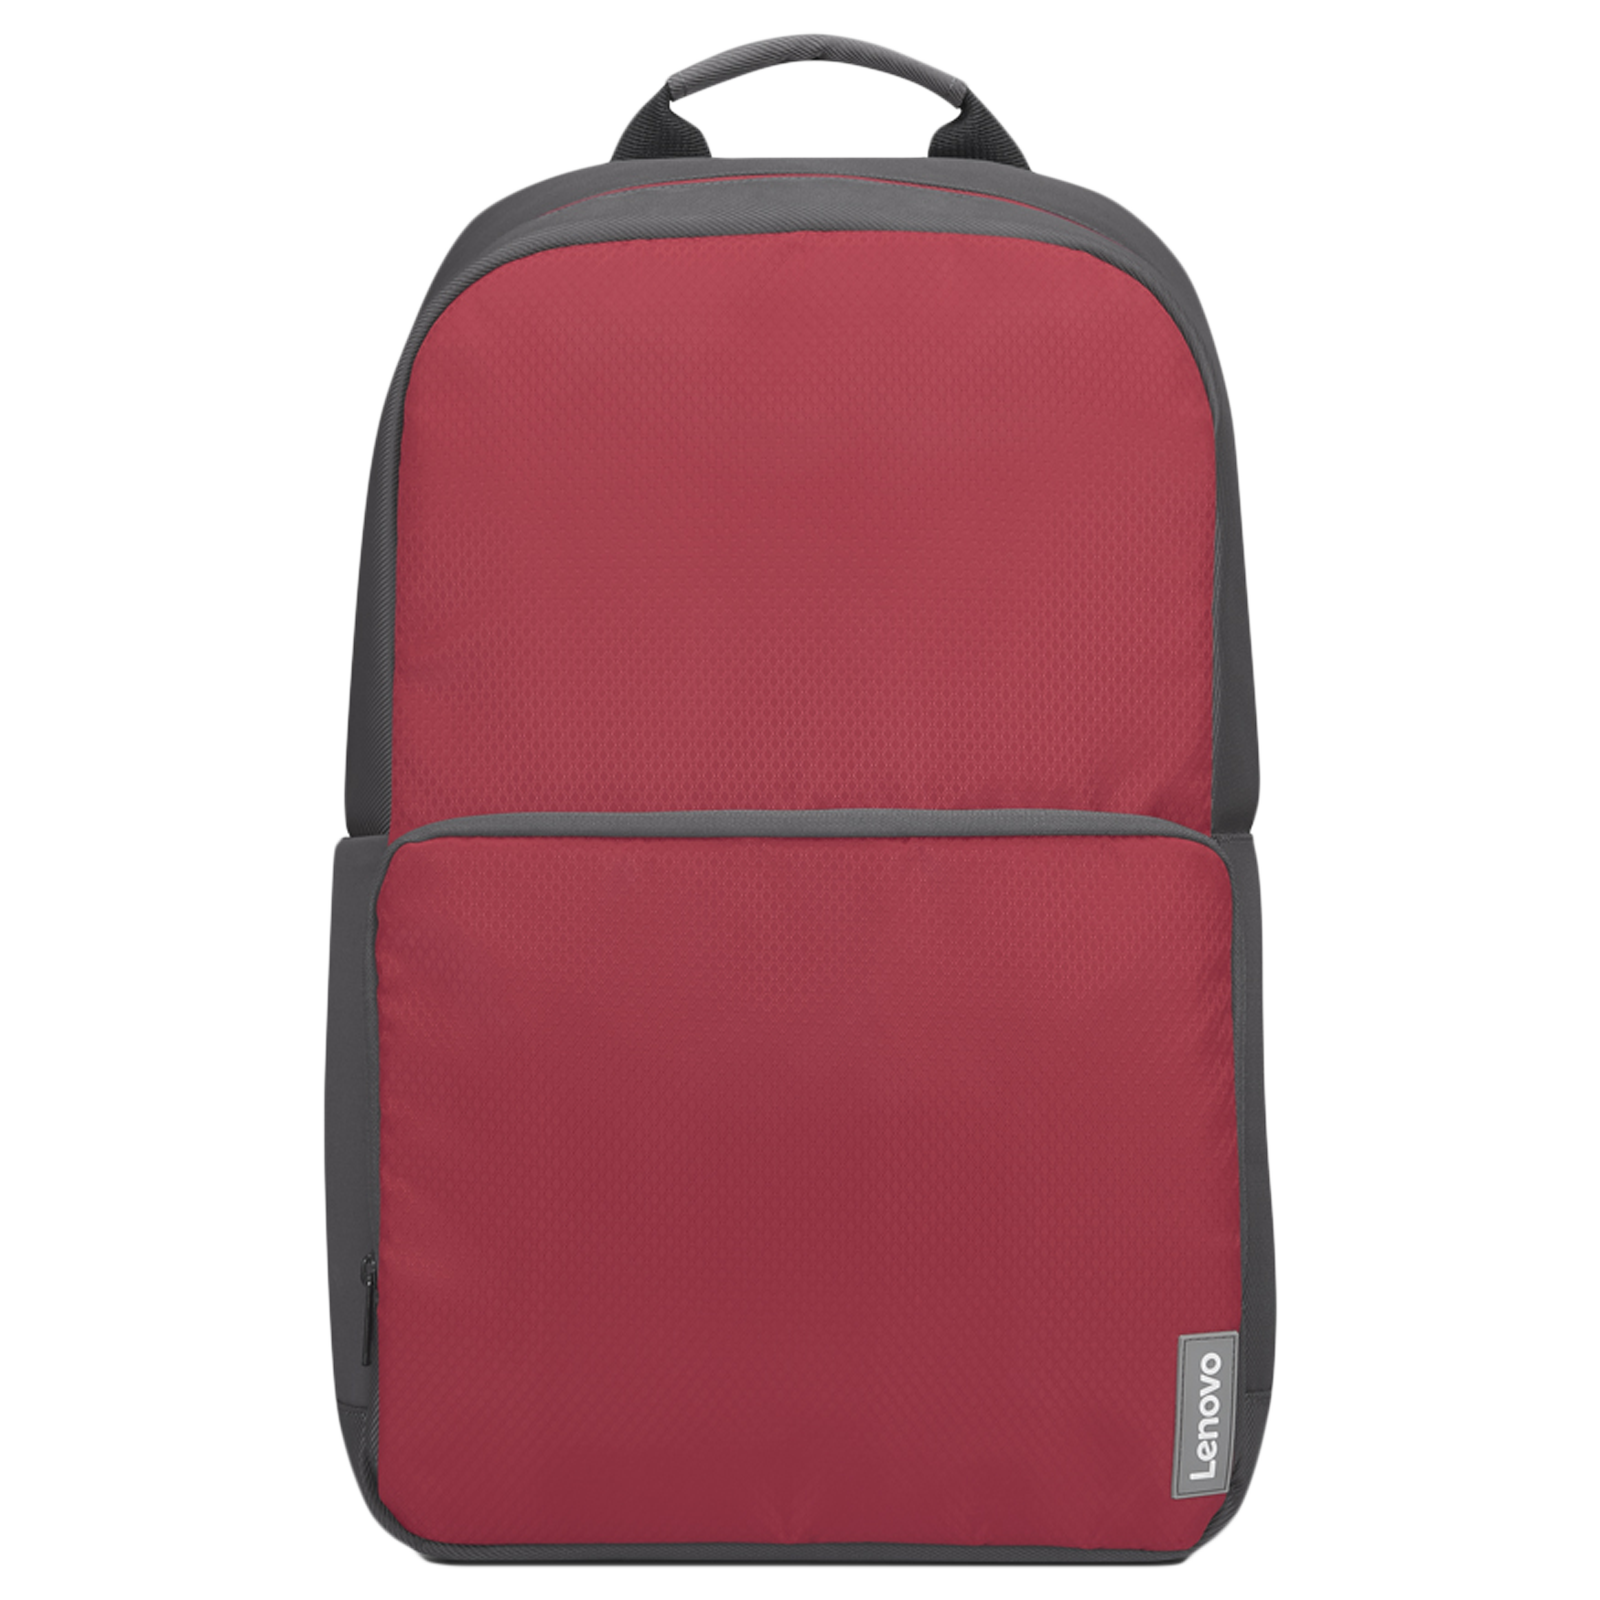 Lenovo Executive 4 Litres Polyester Backpack for 15.6 Inch Laptop (Rain Cover, GX41B83549, Red)_1